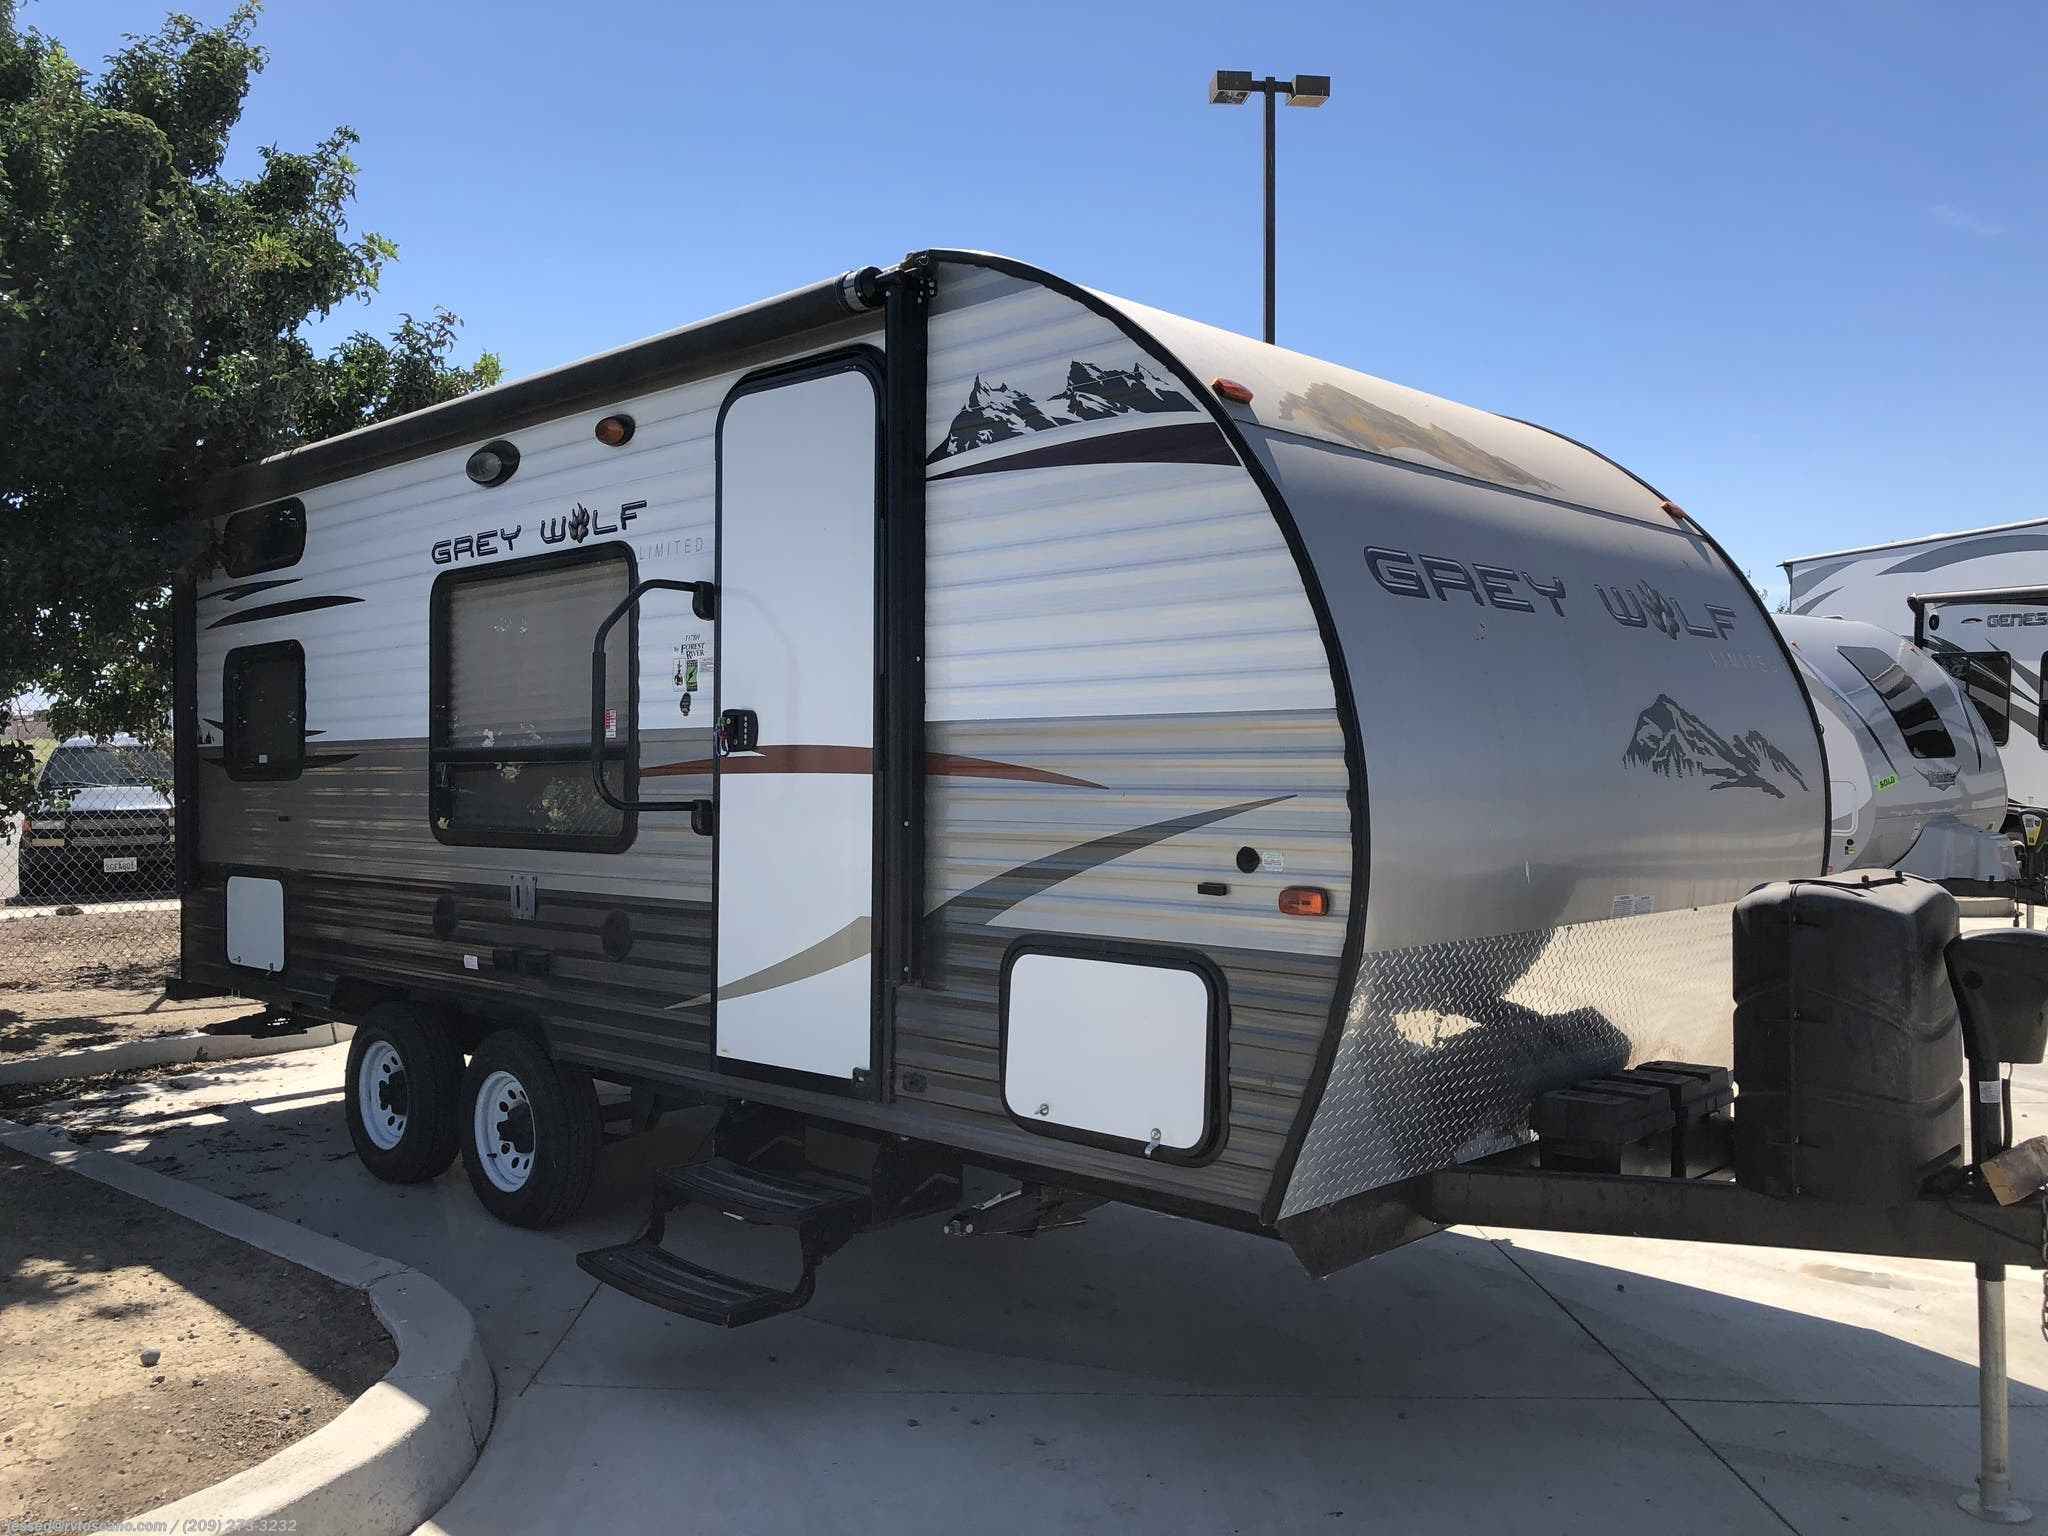 Sold Used 2015 Grey Wolf Travel Trailer Travel Trailer